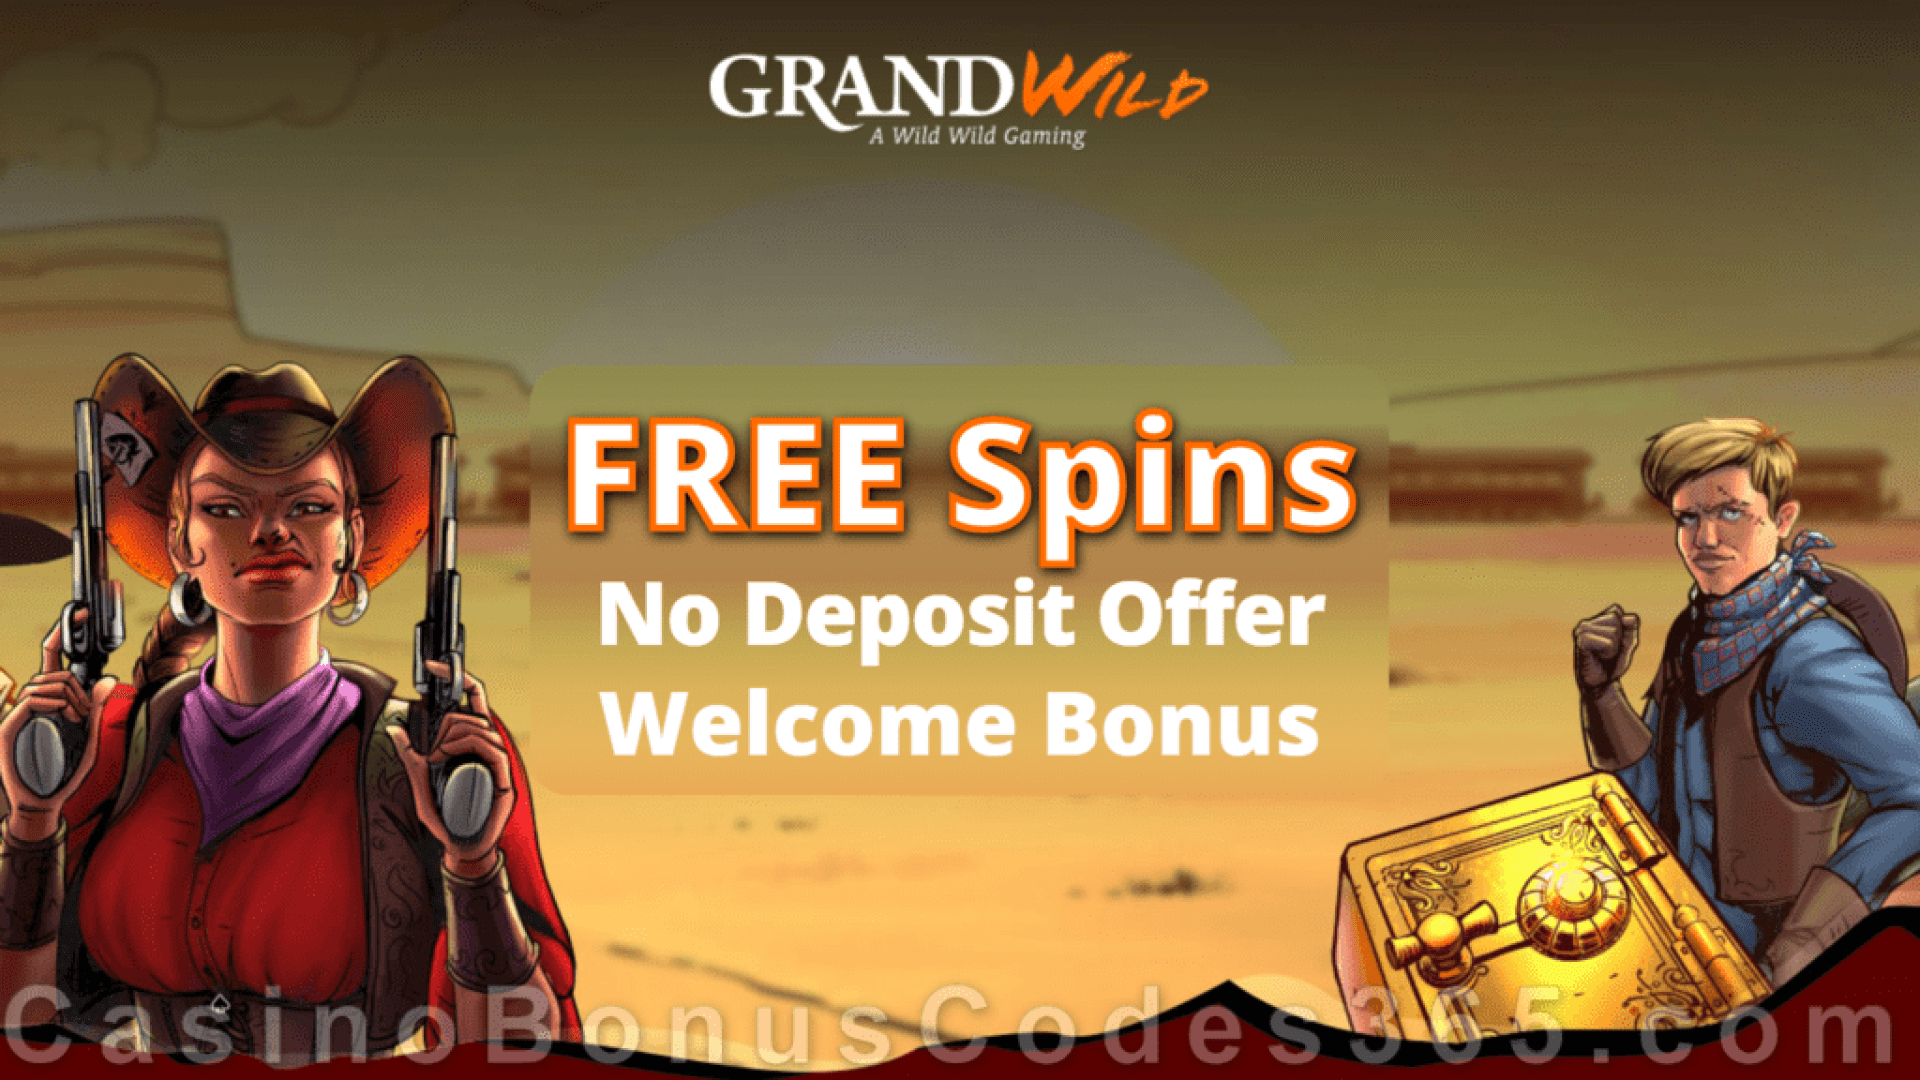 GrandWild Casino Welcome FREE Spins Offer